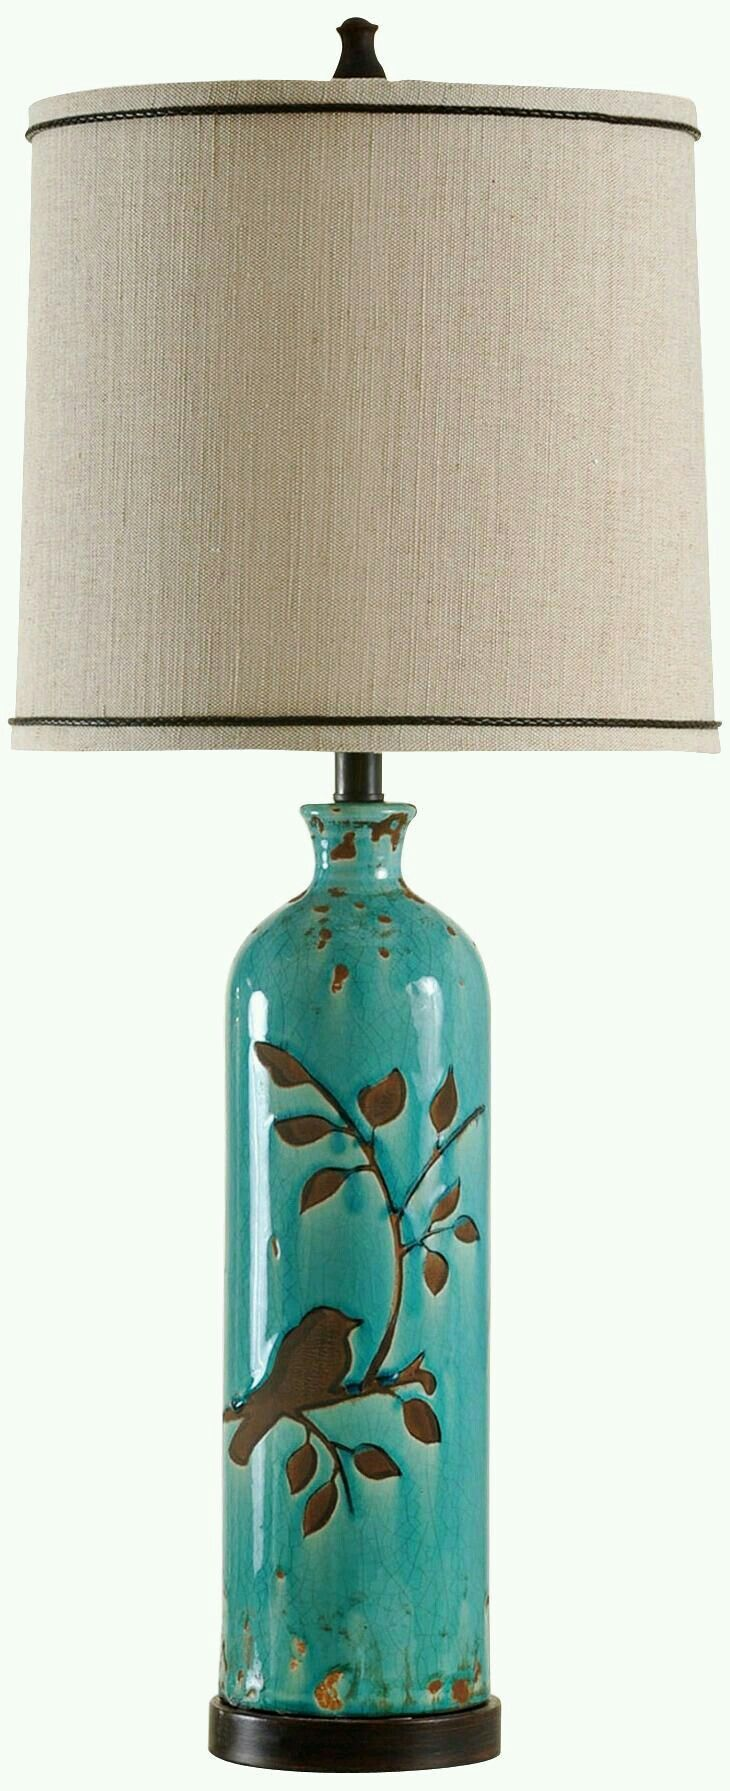 of lamps lamp fantoni product pair marcello turquoise ceramic table perfect past